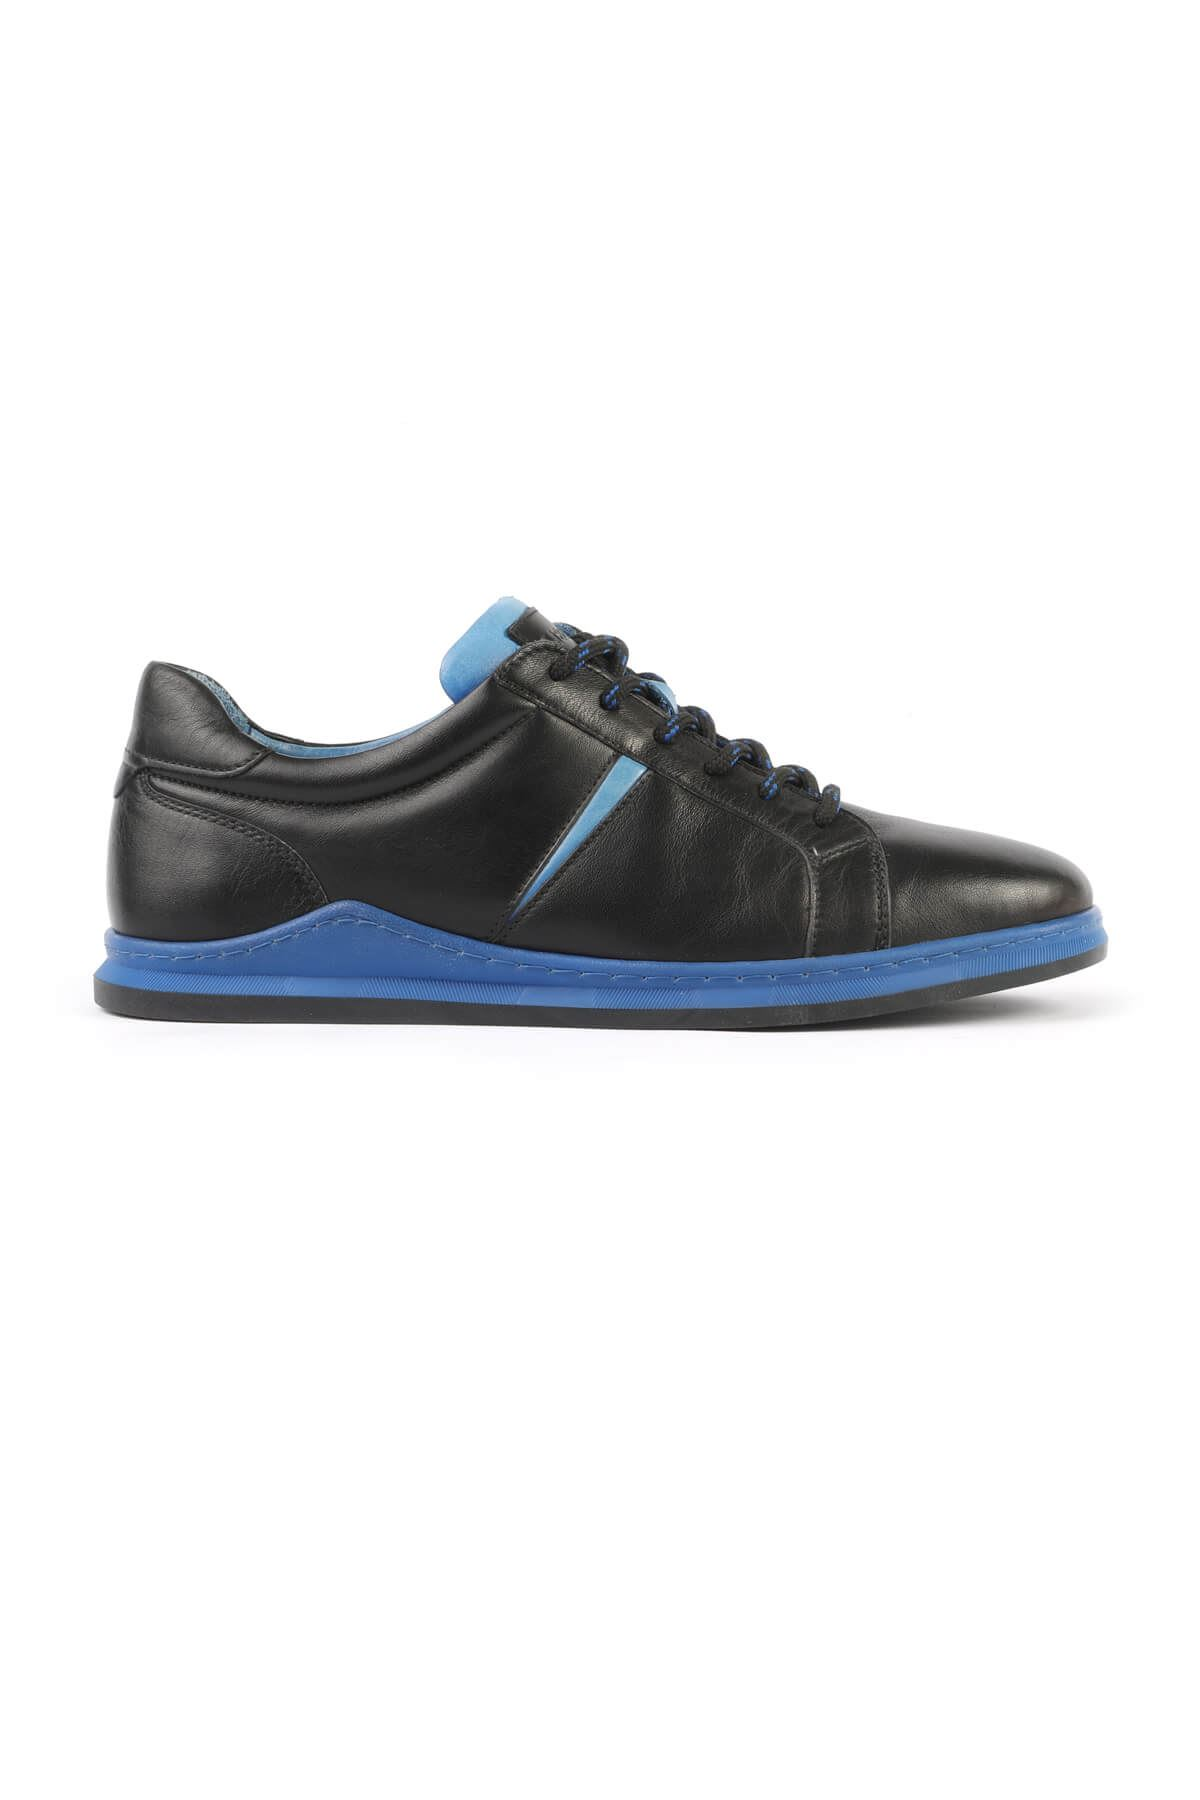 Libero 3196 Black Blue Sneaker Shoes